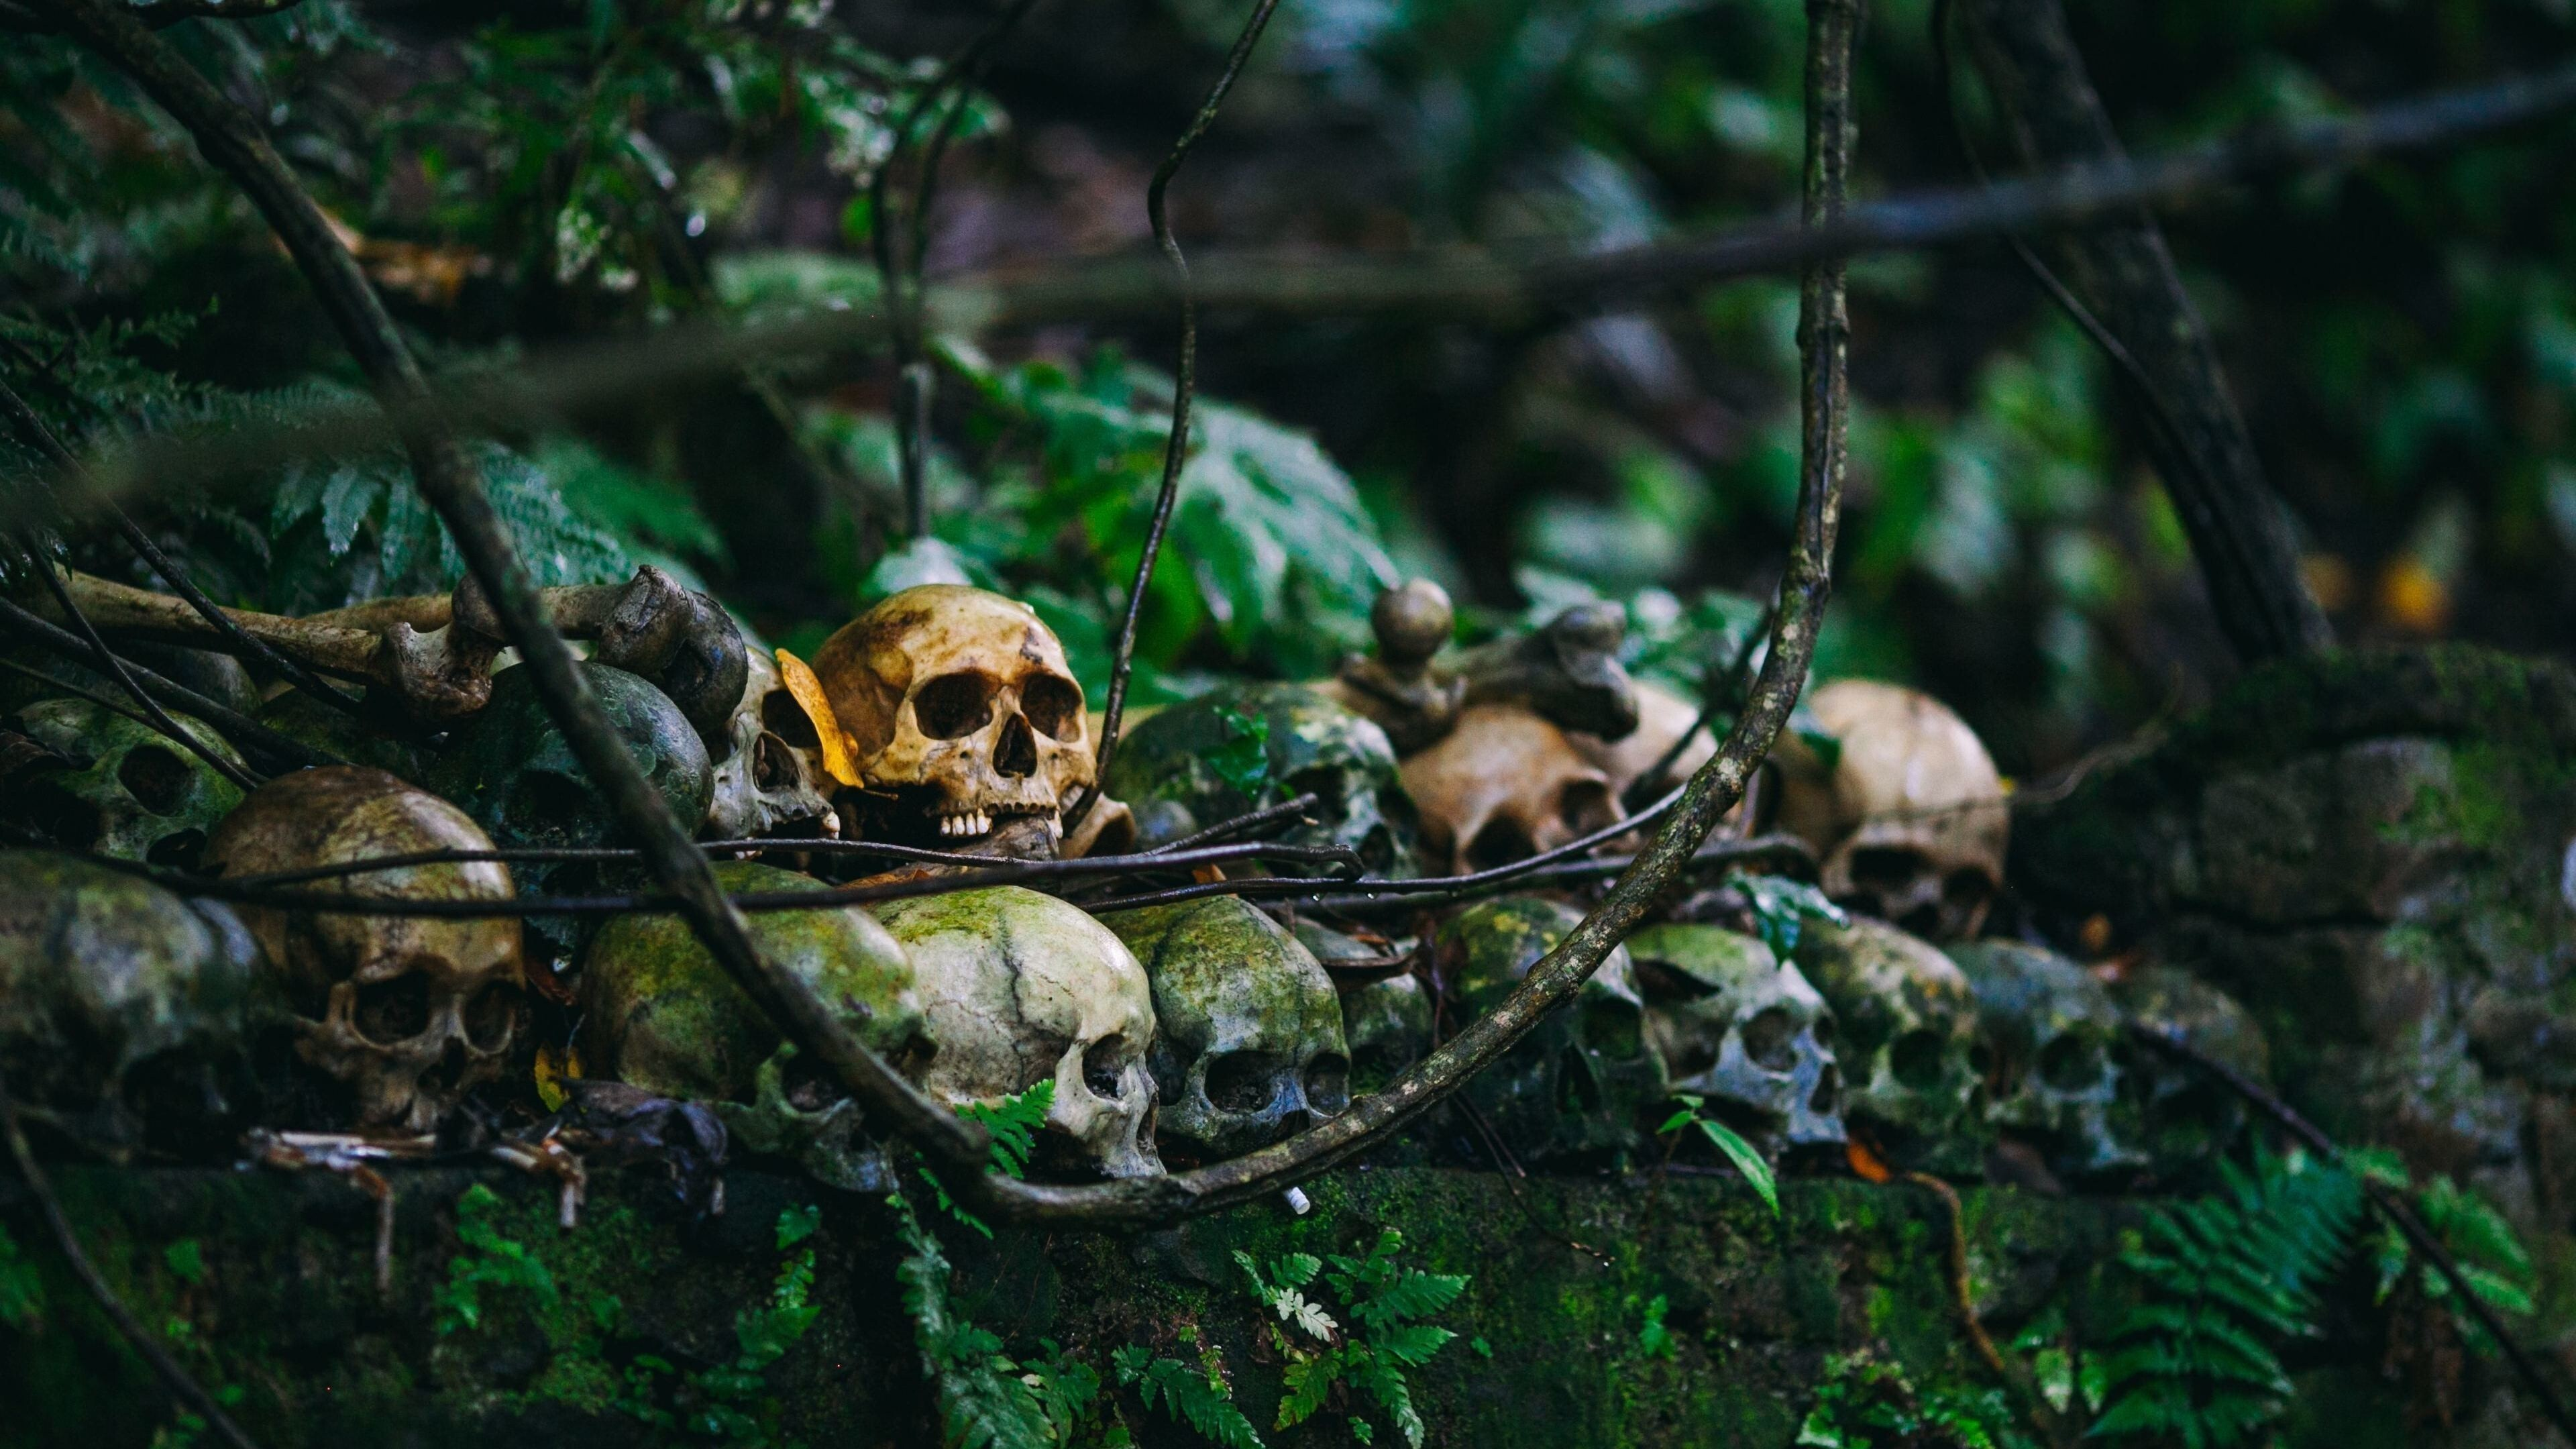 Horror Skull In Jungle 4k Wallpaper Hd Wallpapers